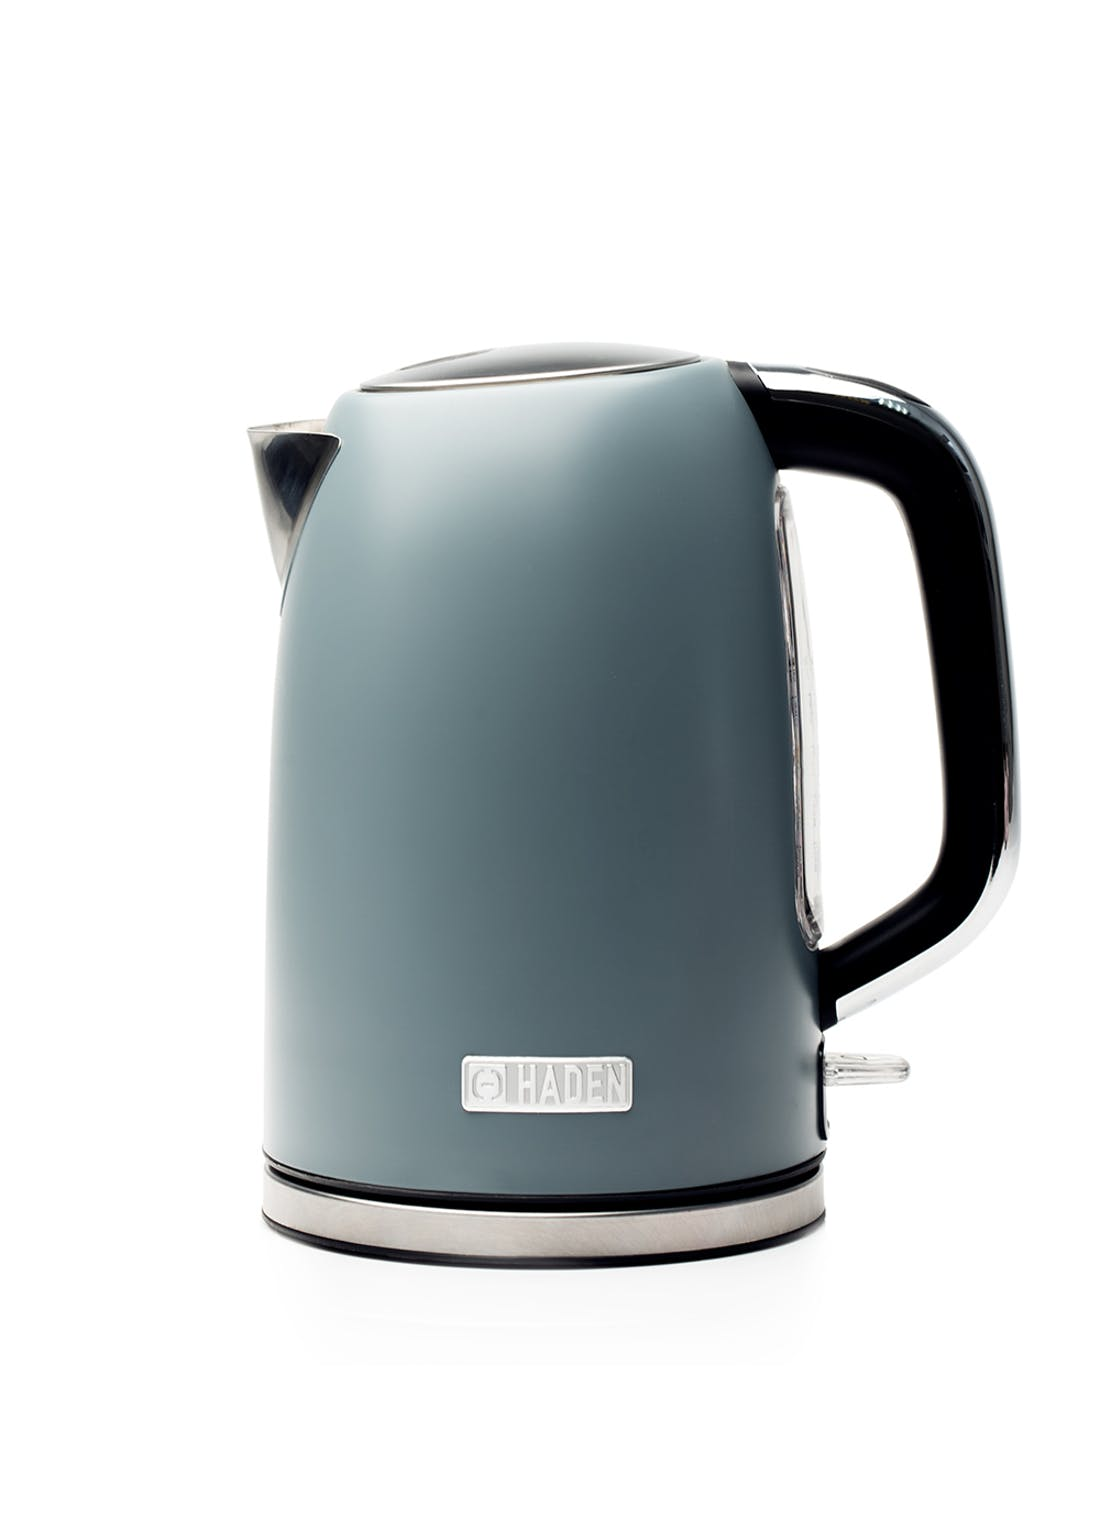 Haden Perth Sleek Kettle (1.7L)